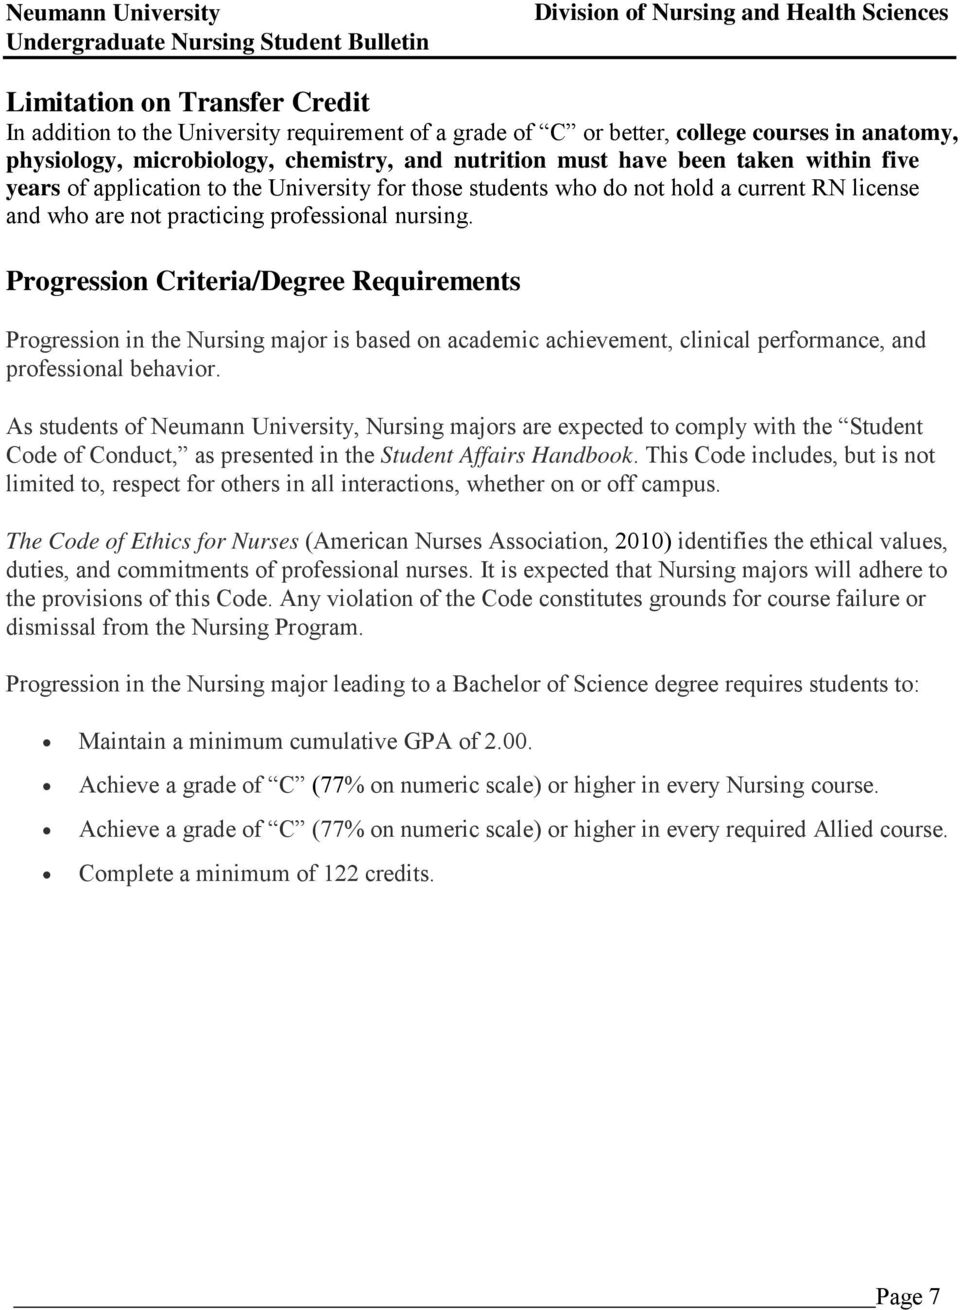 Progression Criteria/Degree Requirements Progression in the Nursing major is based on academic achievement, clinical performance, and professional behavior.